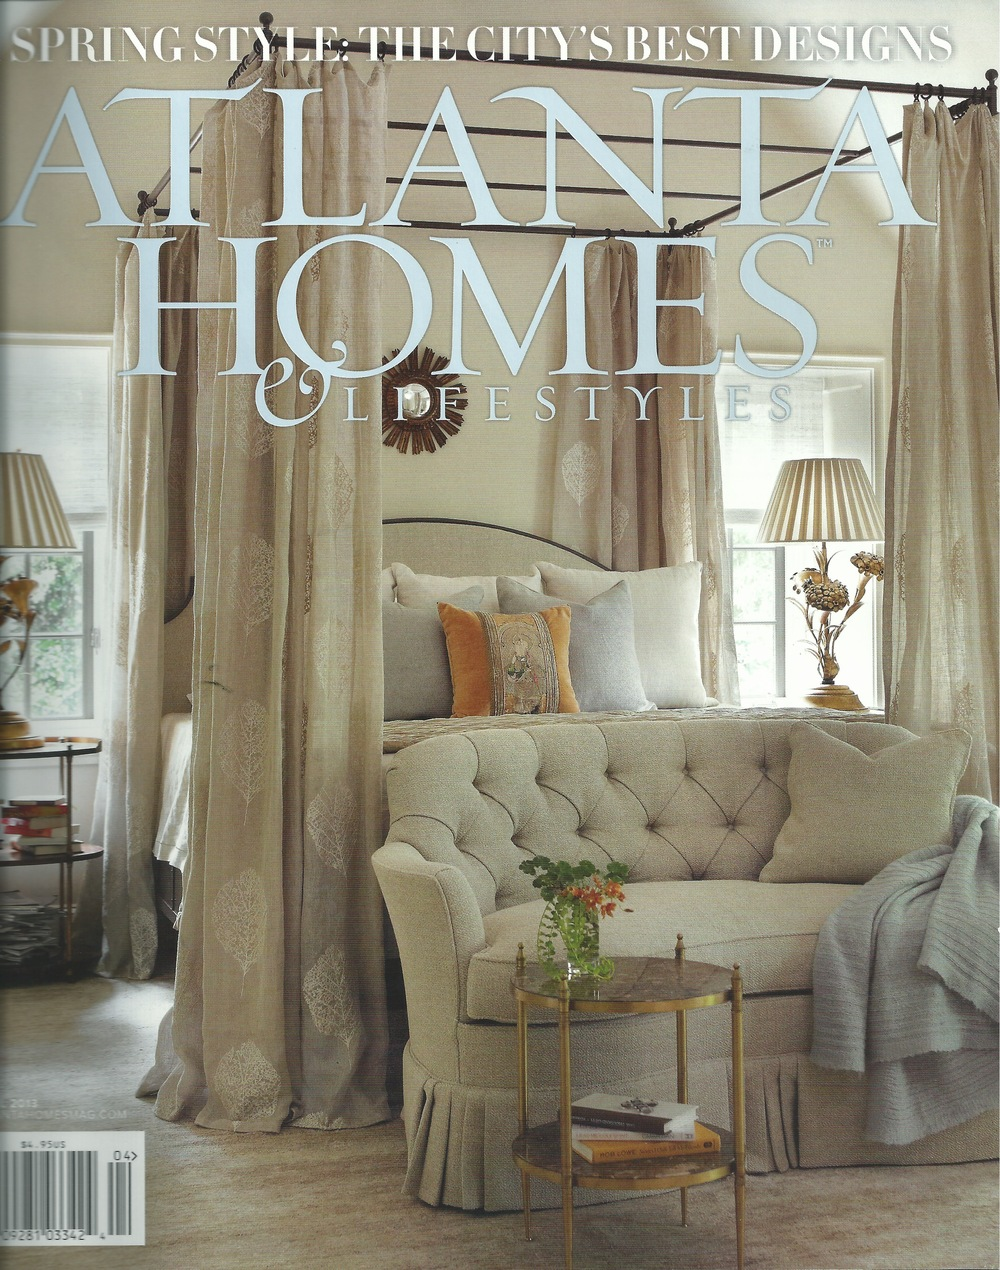 Atlanta Homes & Lifestyles April 2013.jpg